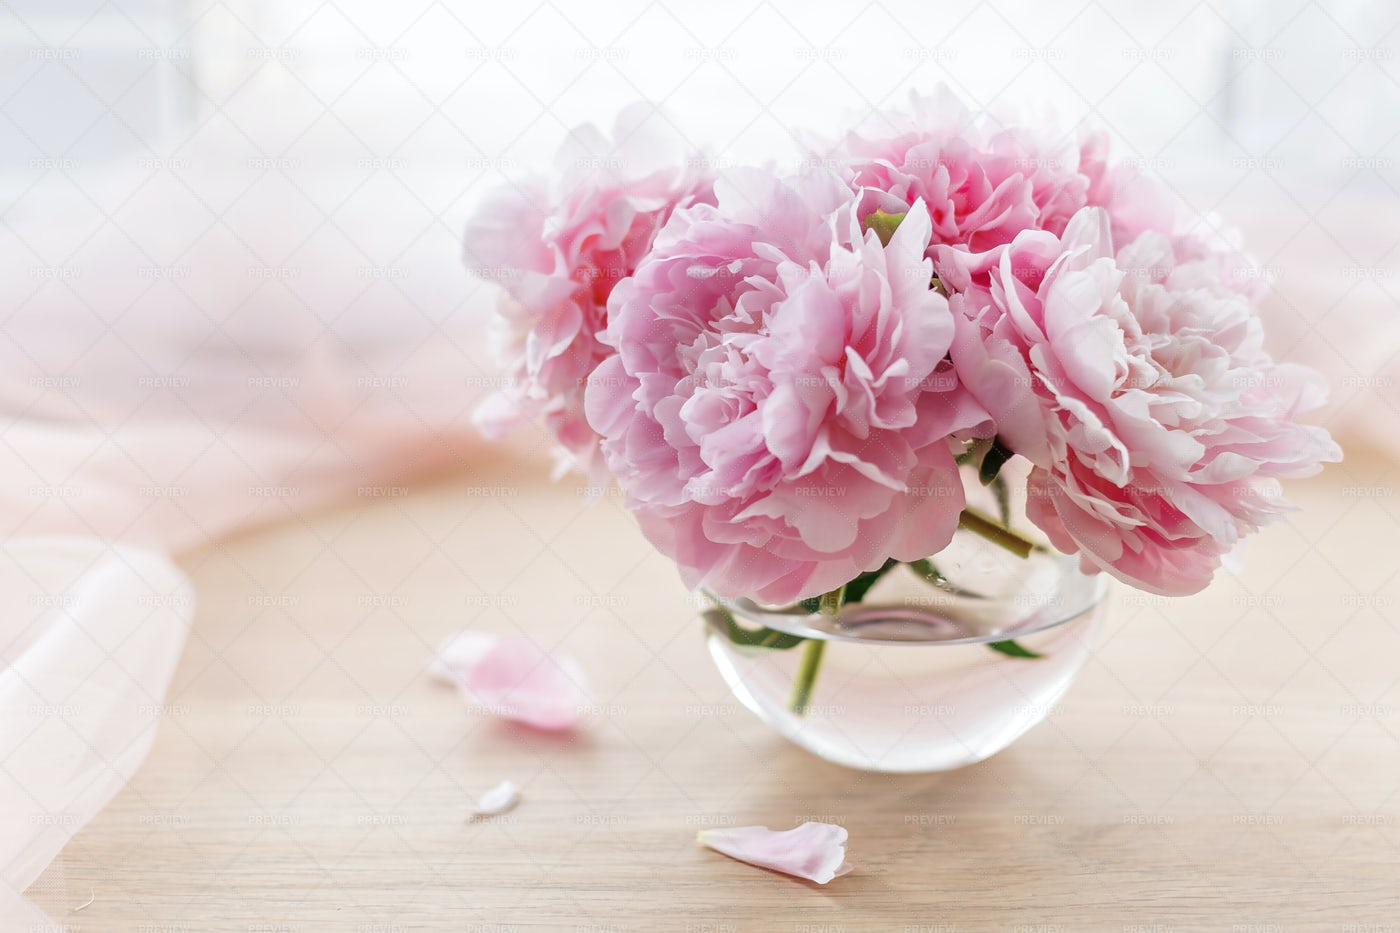 Pink Peonies In A Vase: Stock Photos